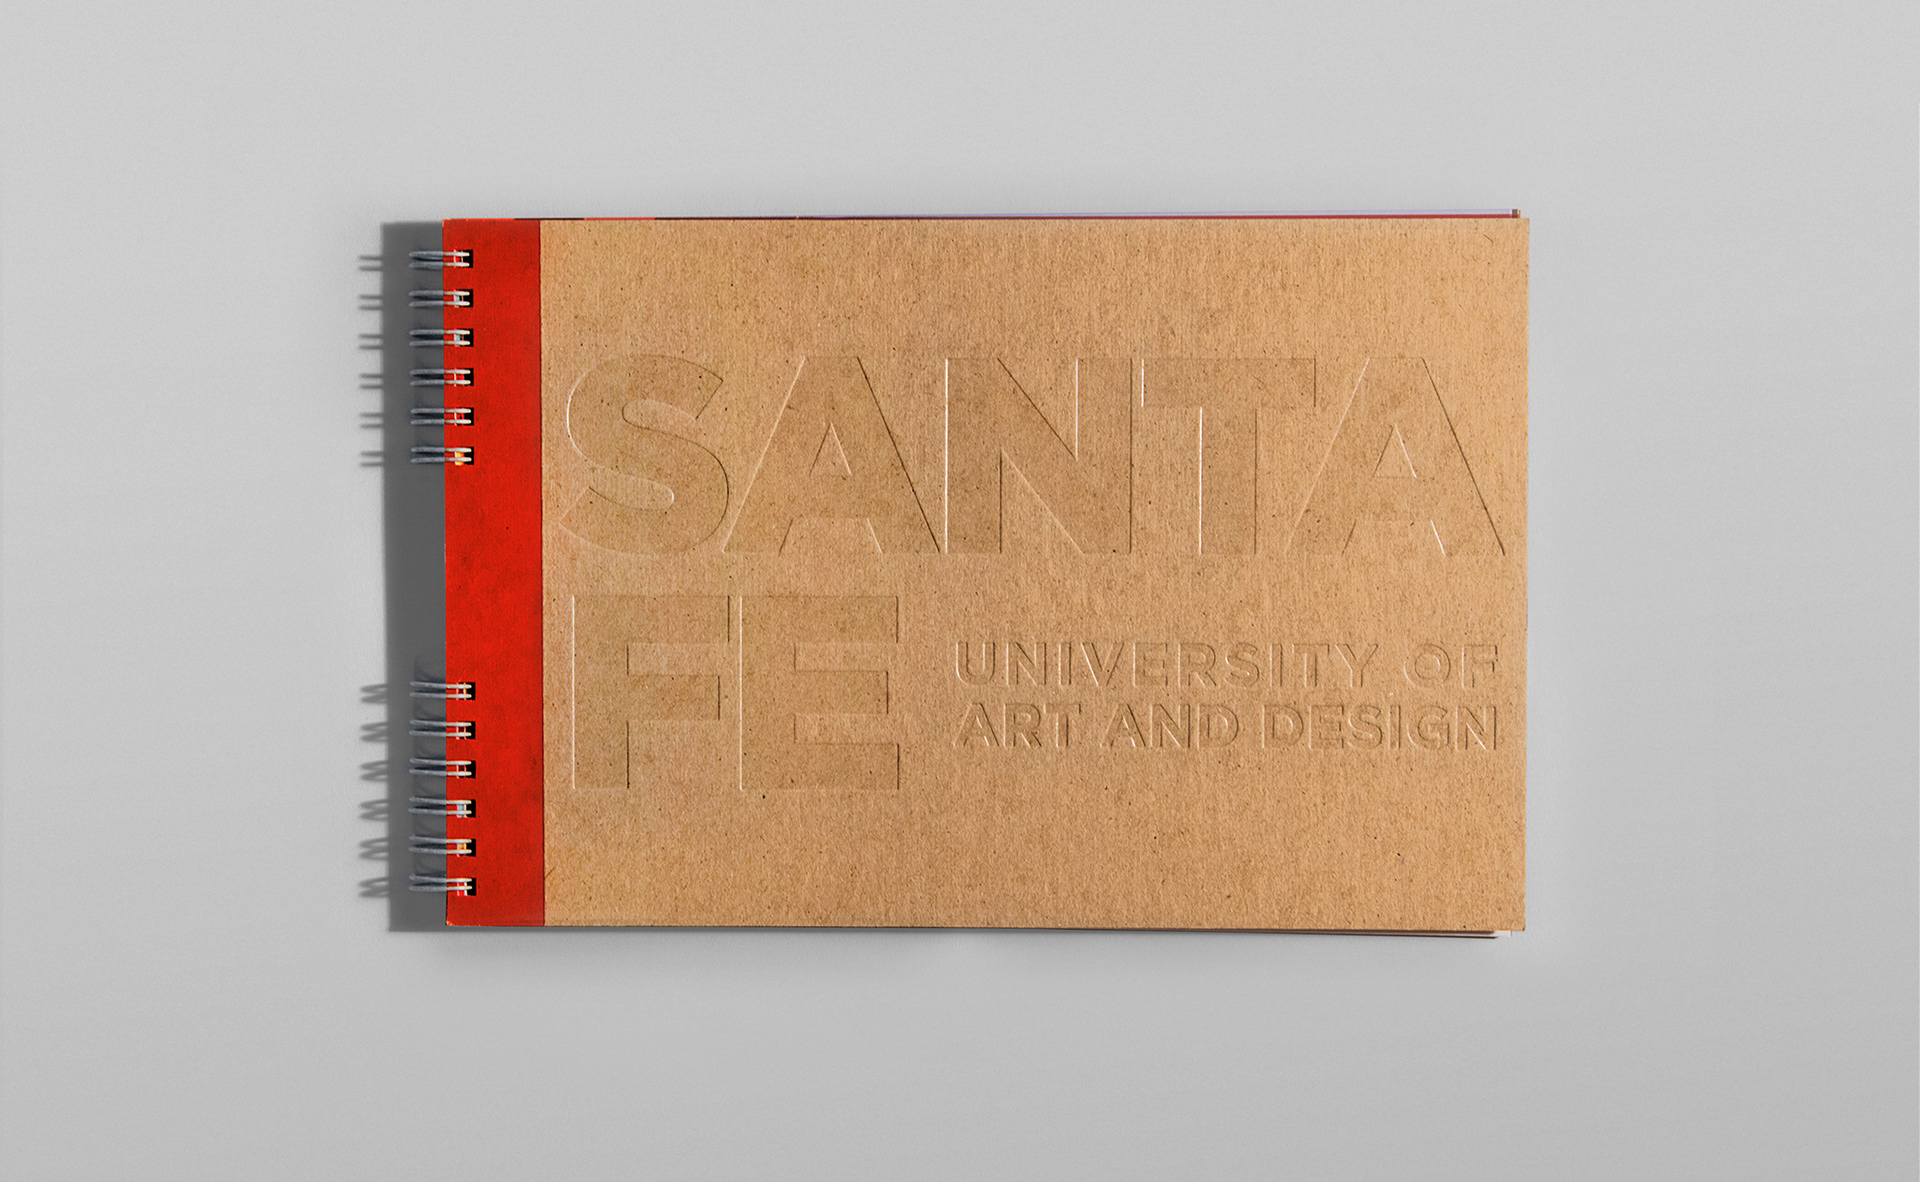 Tracy Brauner Santa Fe University Of Art And Design